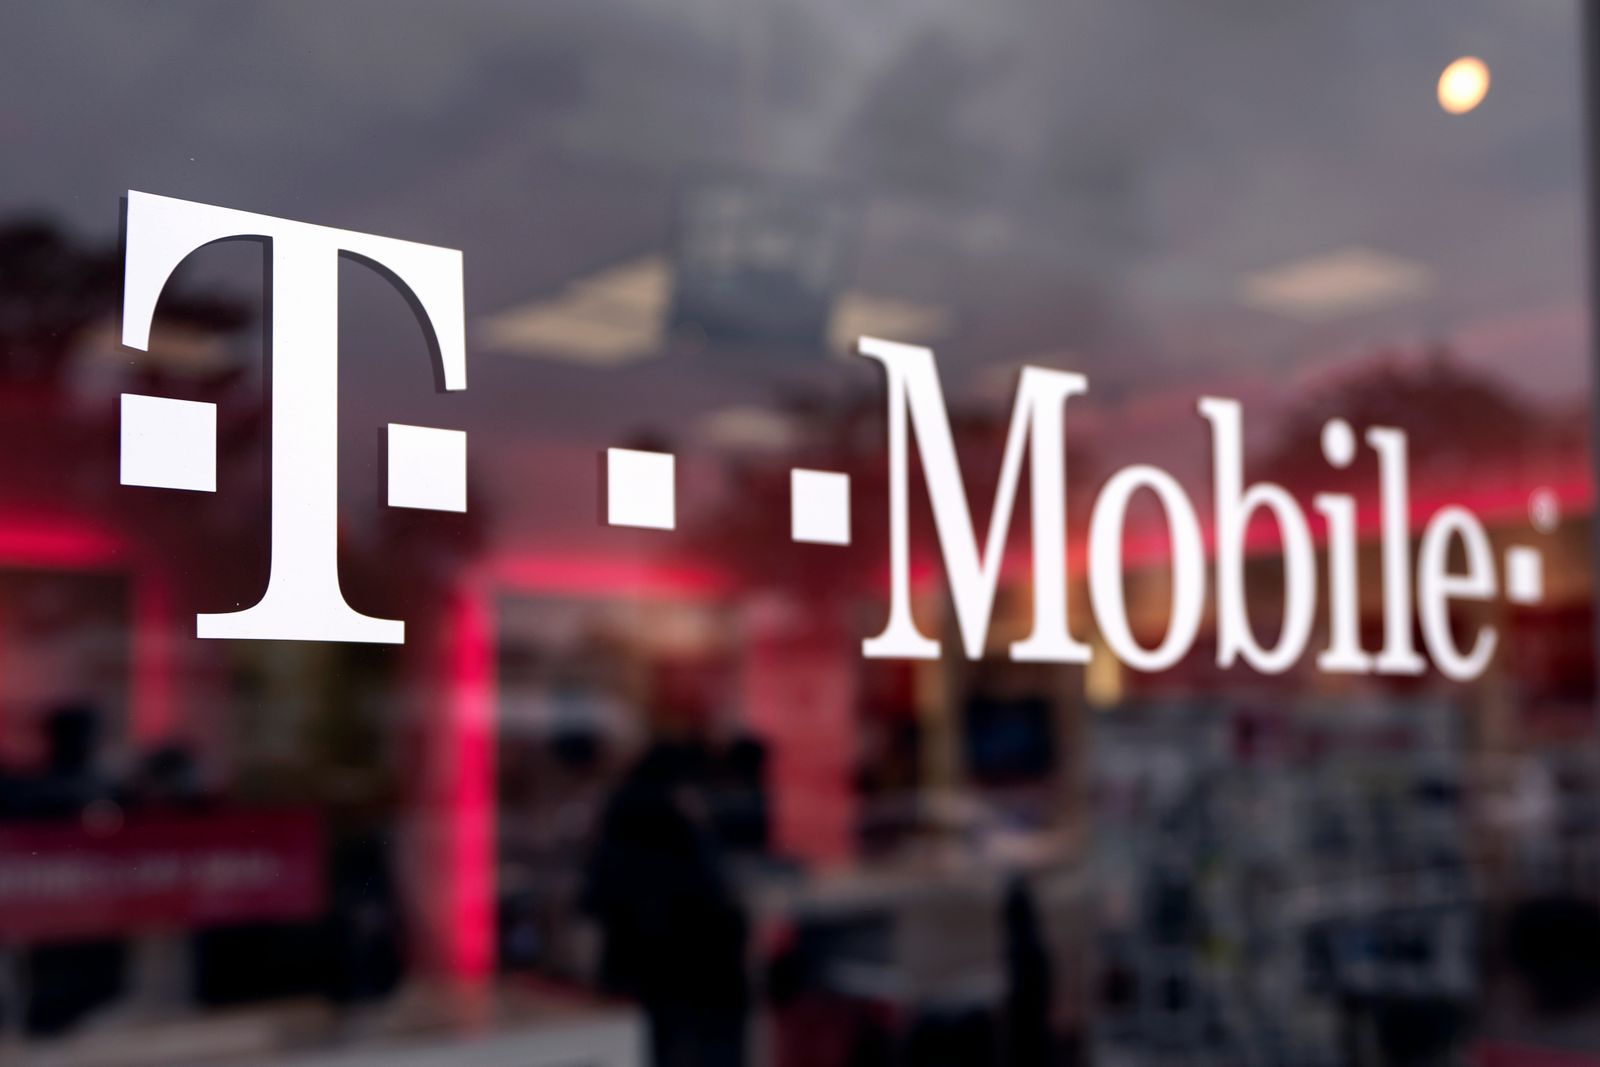 A T-Mobile logo is seen displayed on a store in Los Angeles